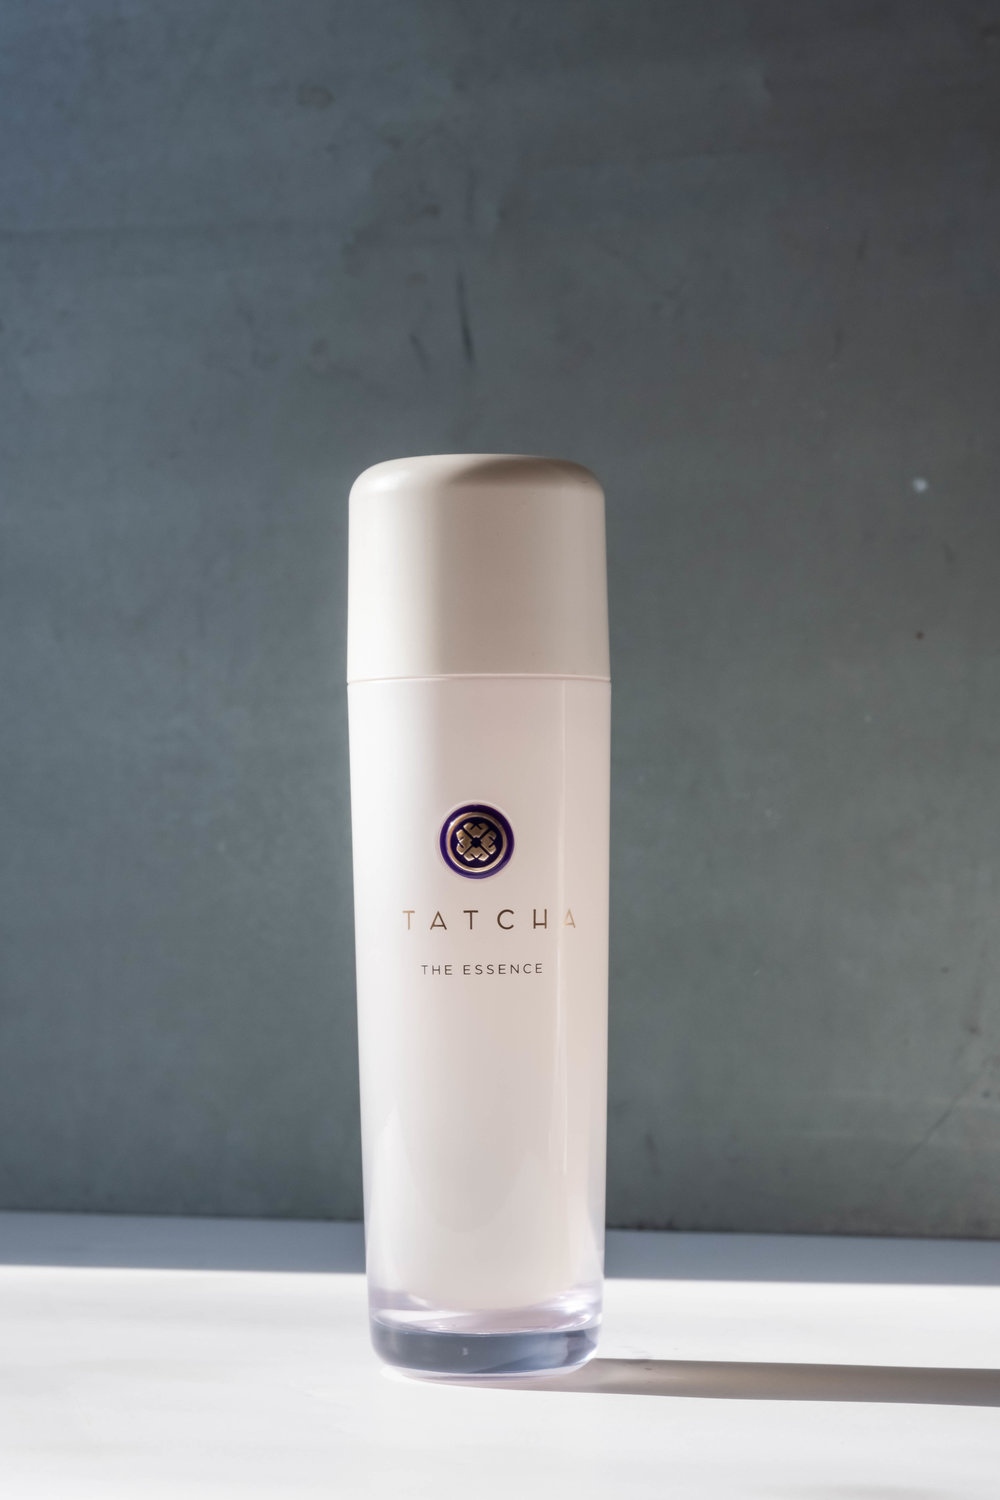 ROSE & IVY Journal Beauty Waters to Try Tatcha The Essence